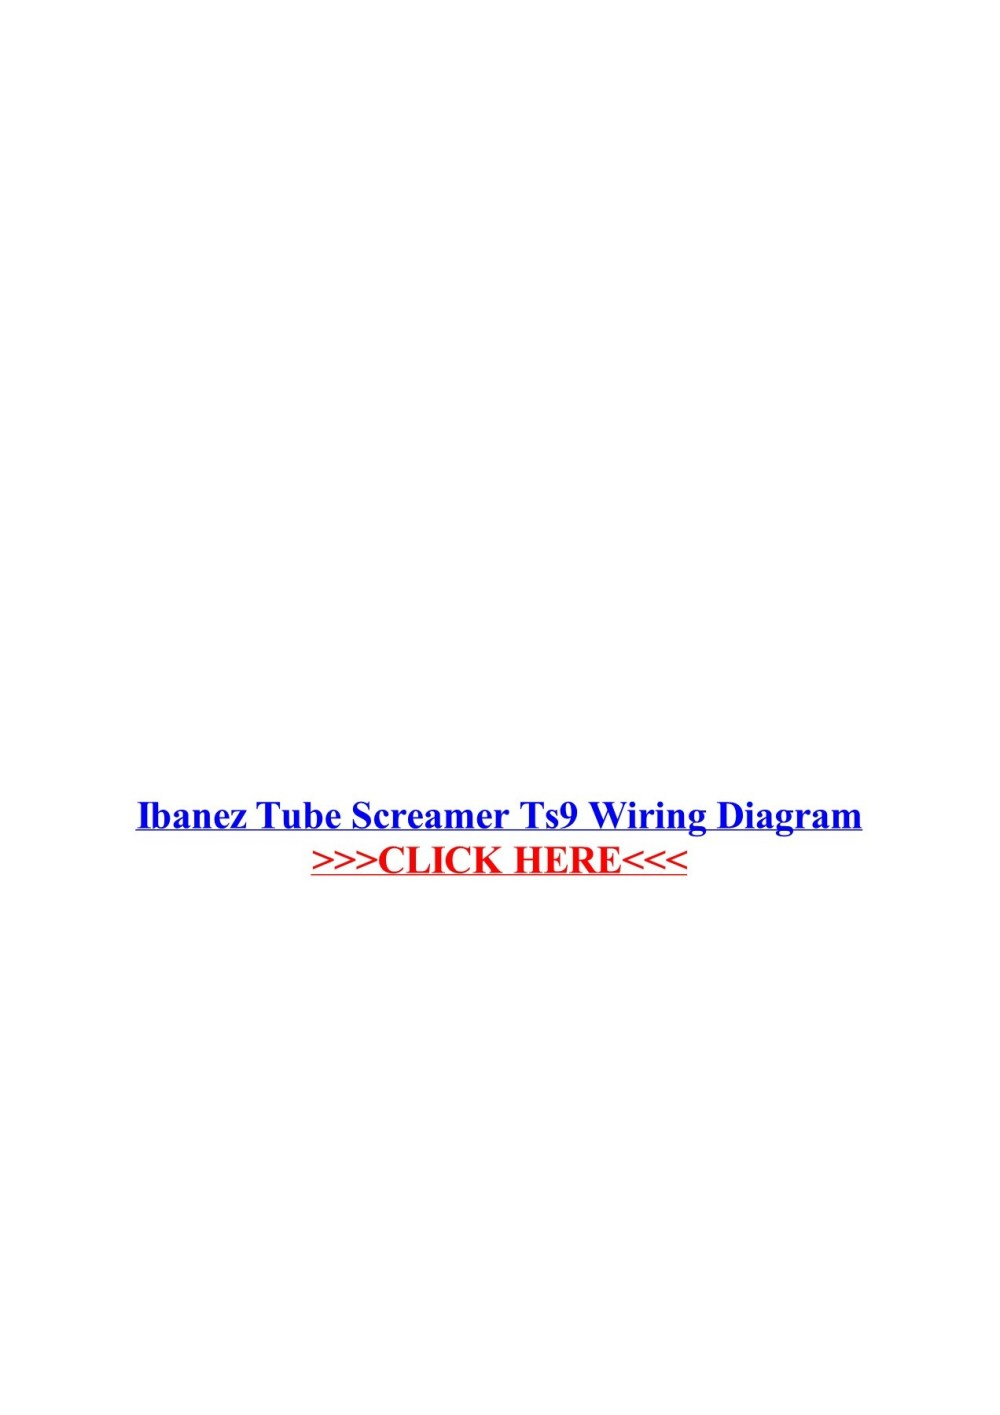 medium resolution of ibanez tube screamer ts9 wiring diagram wordpress com